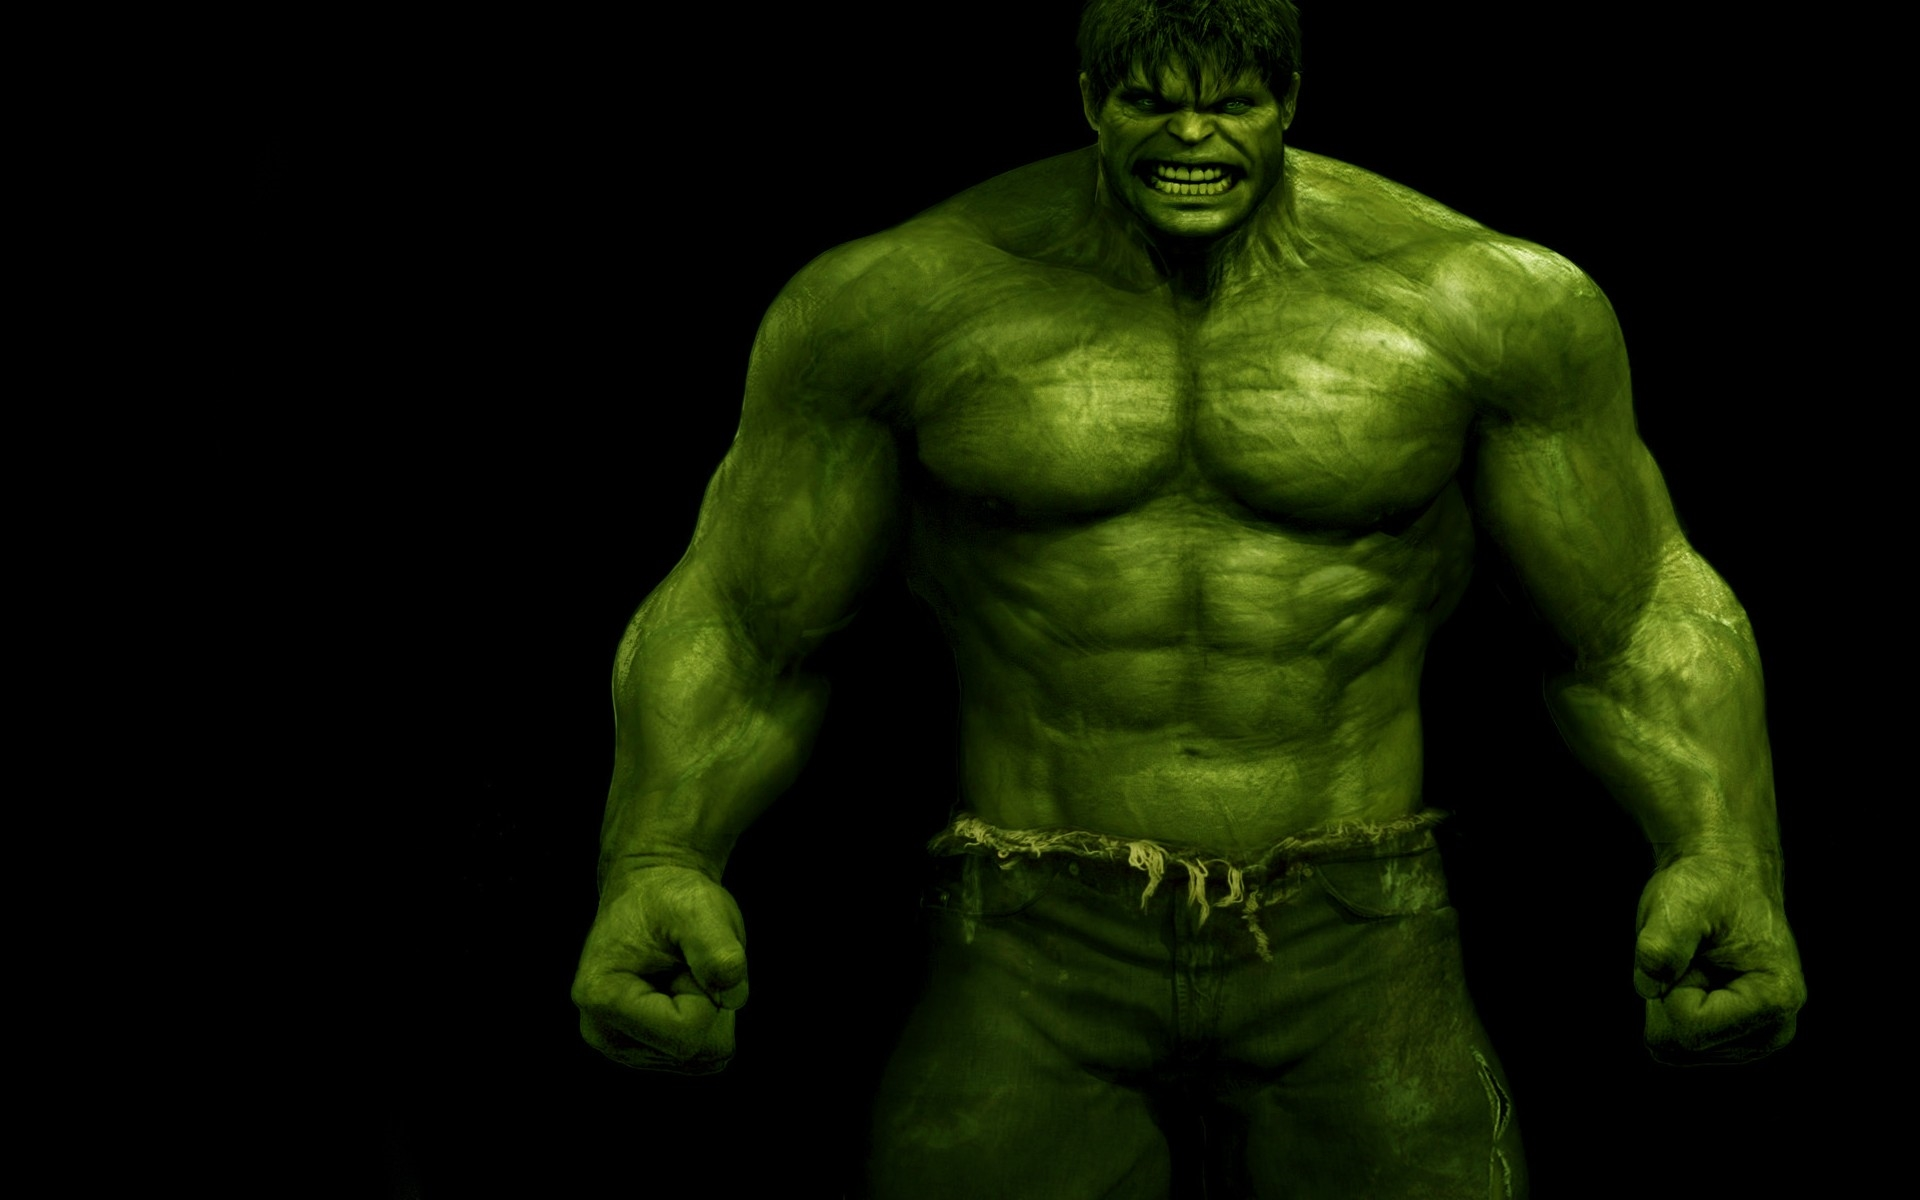 Hulk wallpapers free download - Hulk hd images free download ...